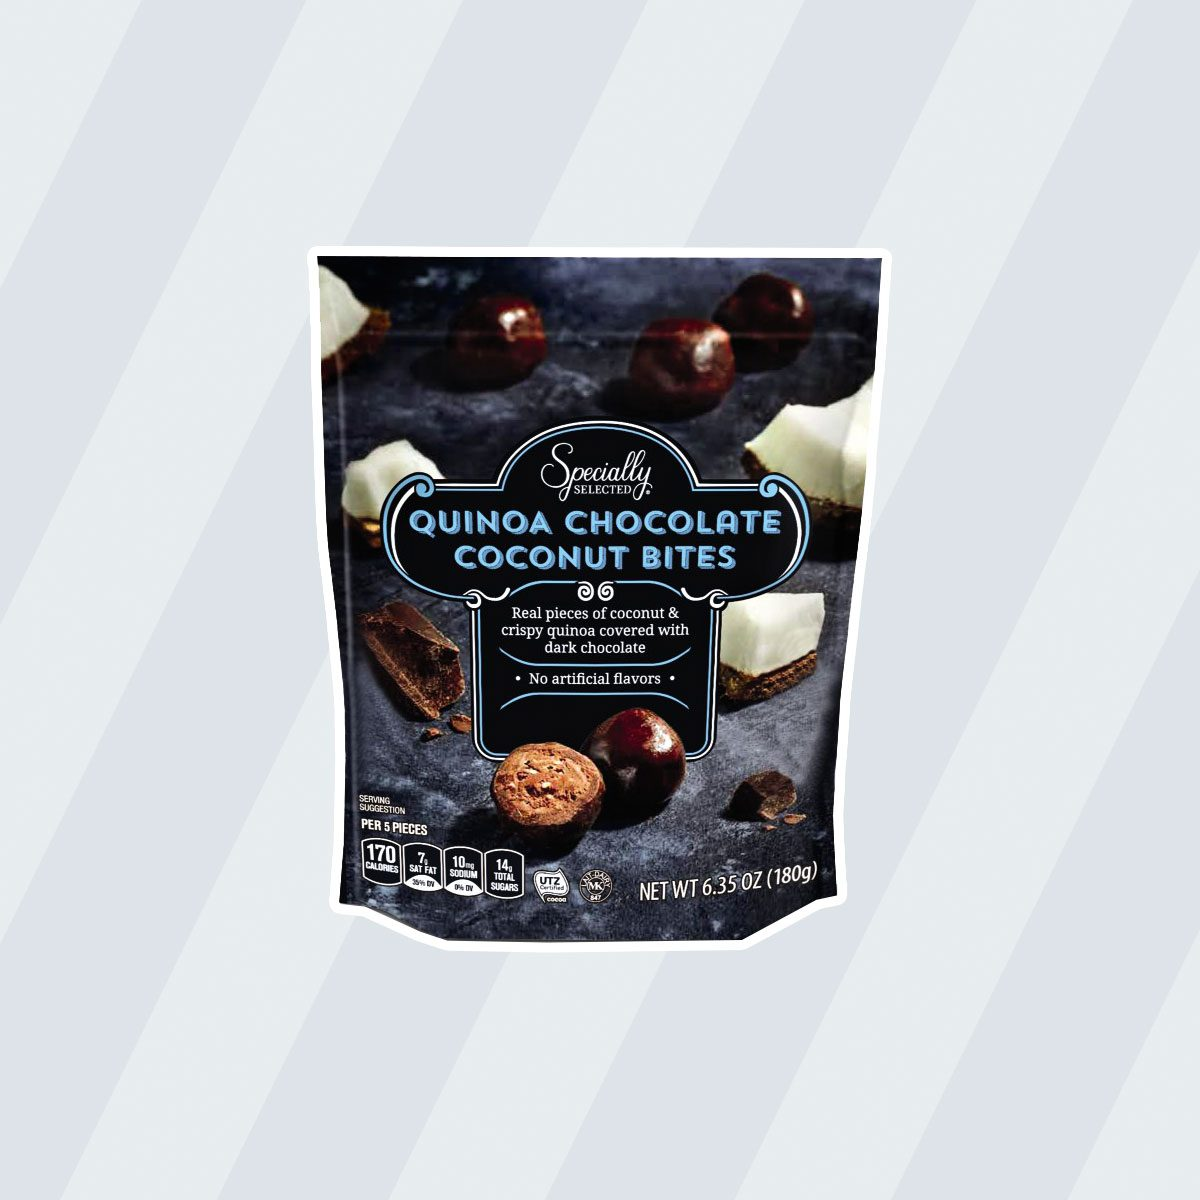 Specially Selected Coconut Quinoa Chocolate Bites